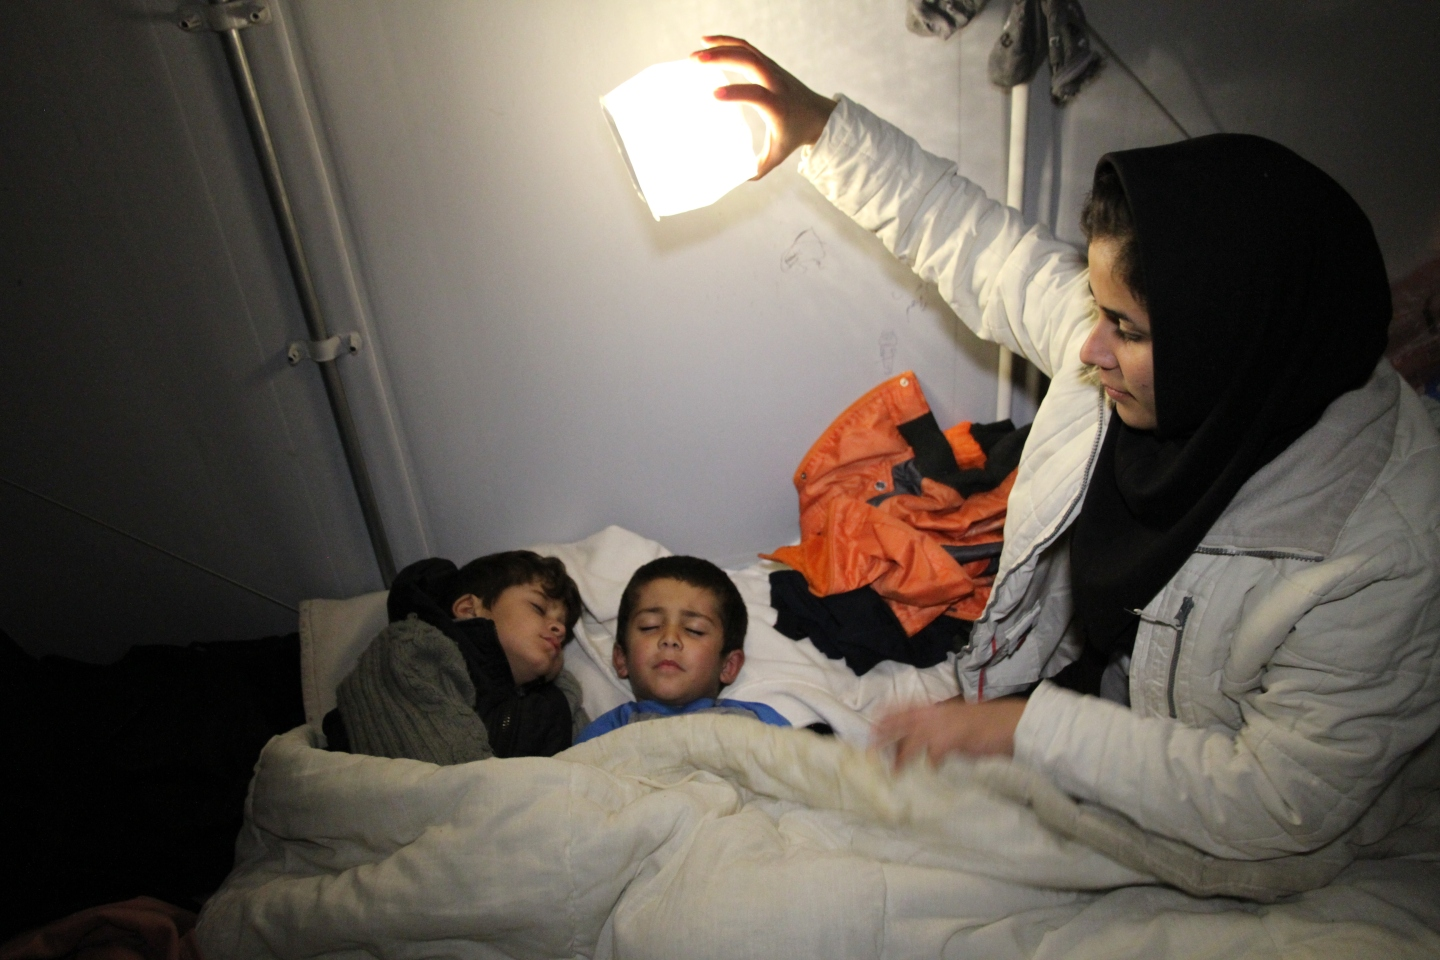 Dr. Alison thompson delivering light with a solar lamp at a refugee camp